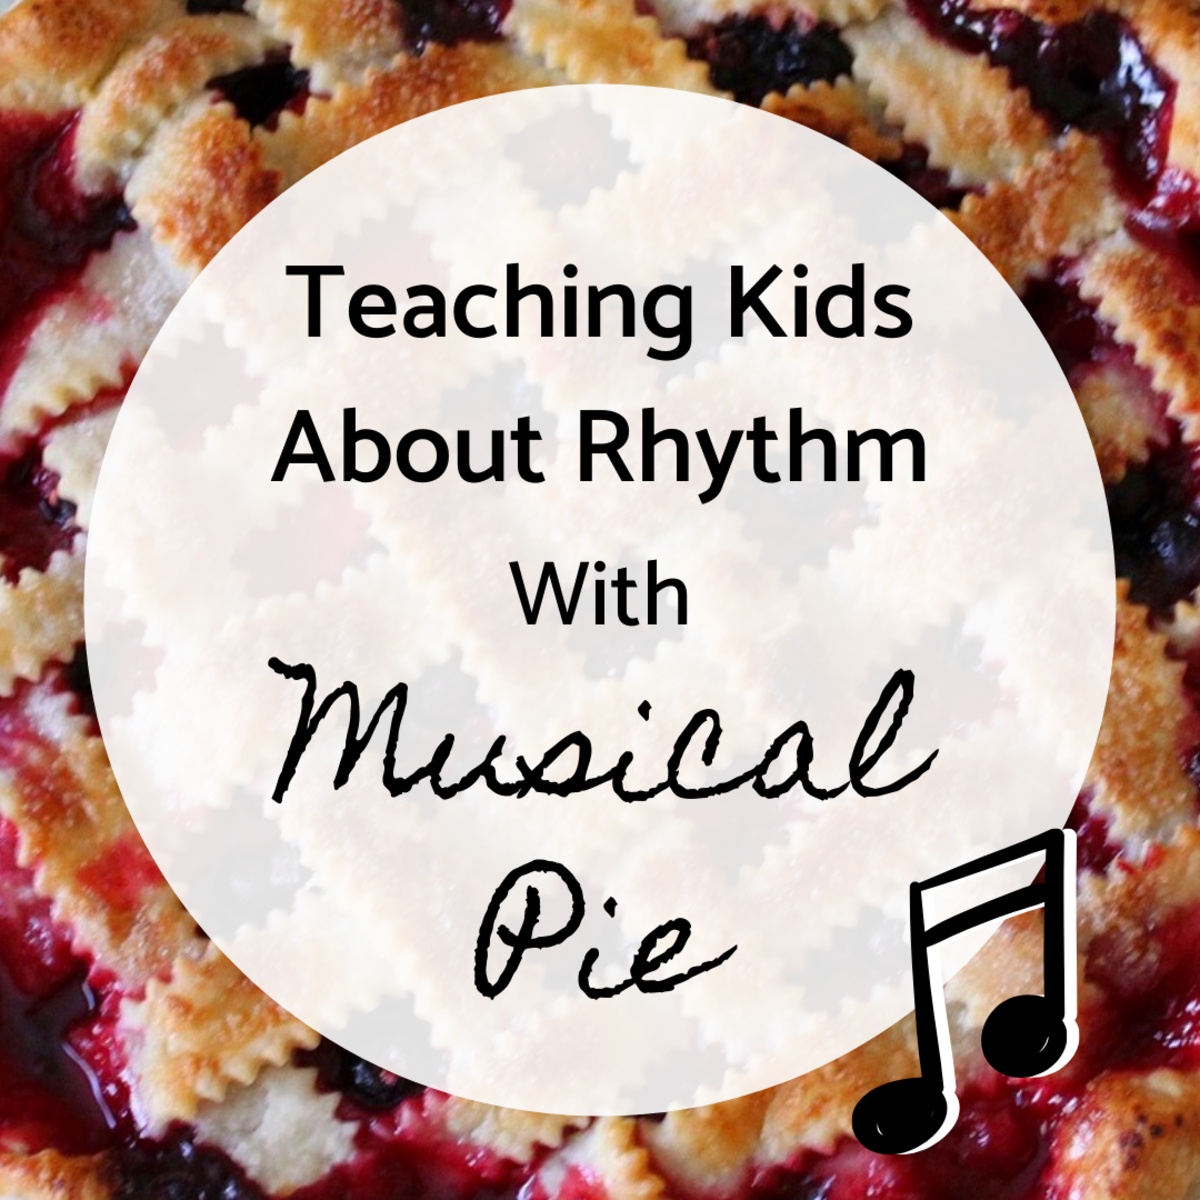 You can teach children about rhythm and note values by comparing them to words. For example, a quarter note can be compared to a one-syllable word. This lesson associates notes with the names of pies.